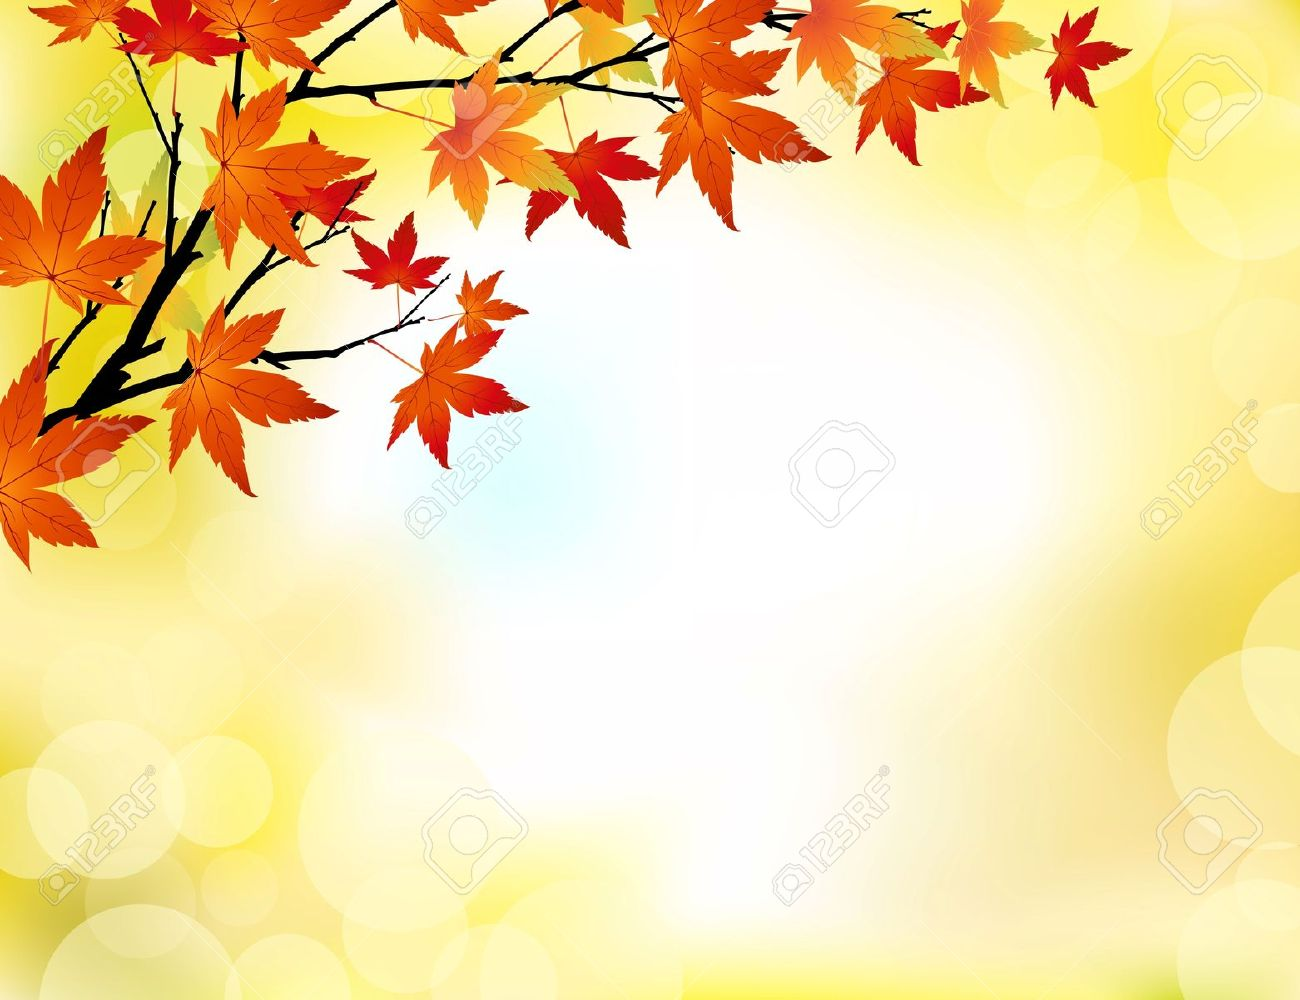 Autumn Background Royalty Free Cliparts, Vectors, And Stock